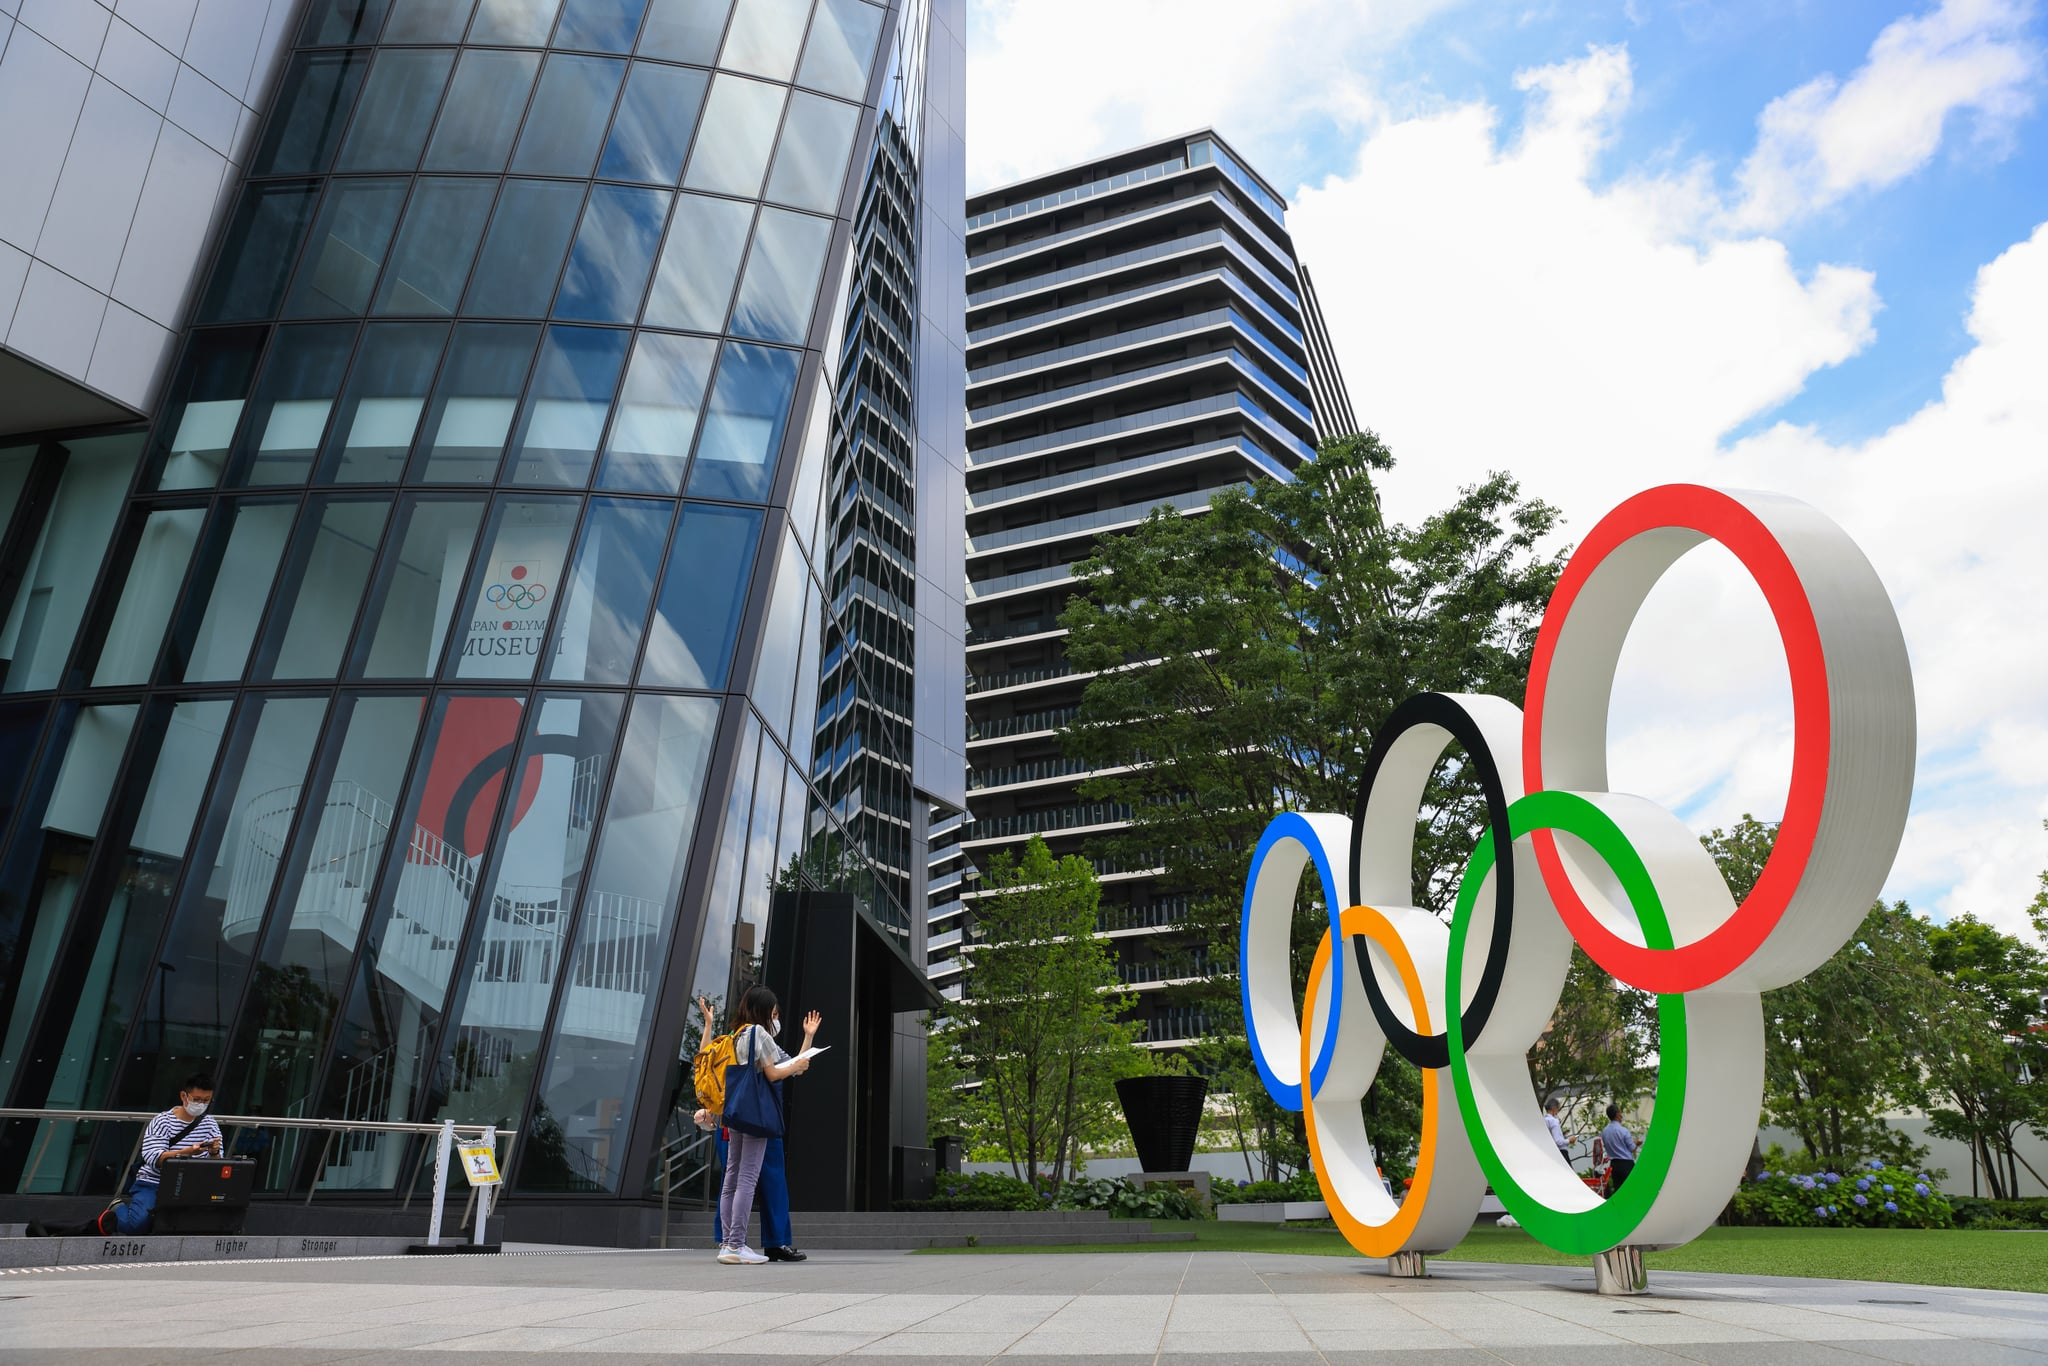 TOKYO, JAPAN - 2021/06/17: Olympic Rings installation in front of Japan Olympic Museum in Shinjuku.Construction of facilities for the Olympic games is still going on with only a few weeks to the opening of the controversial Summer Olympic Games. (Photo by Stanislav Kogiku/SOPA Images/LightRocket via Getty Images)